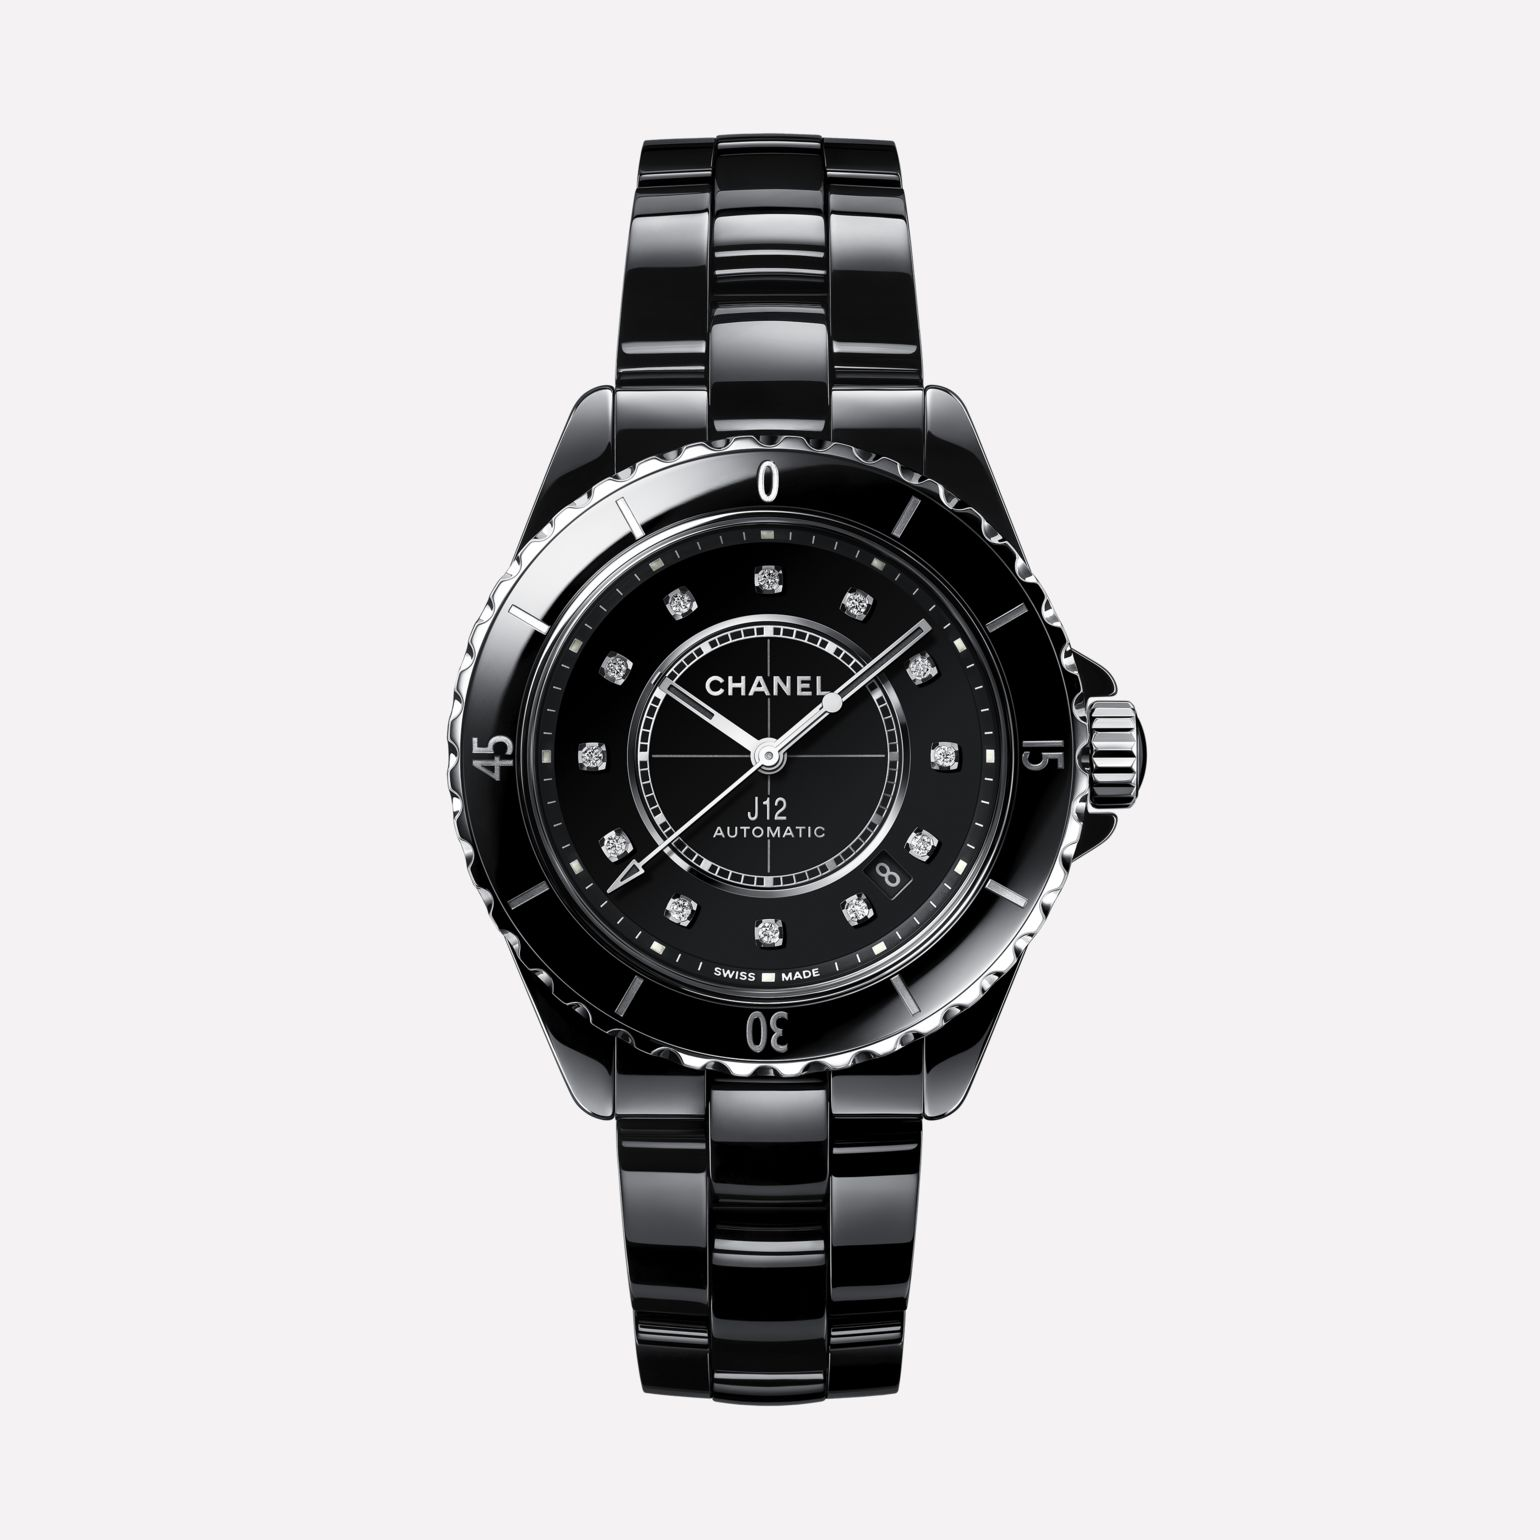 J12 Watch Caliber 12.1, 38 mm Black highly resistant ceramic, steel and diamonds